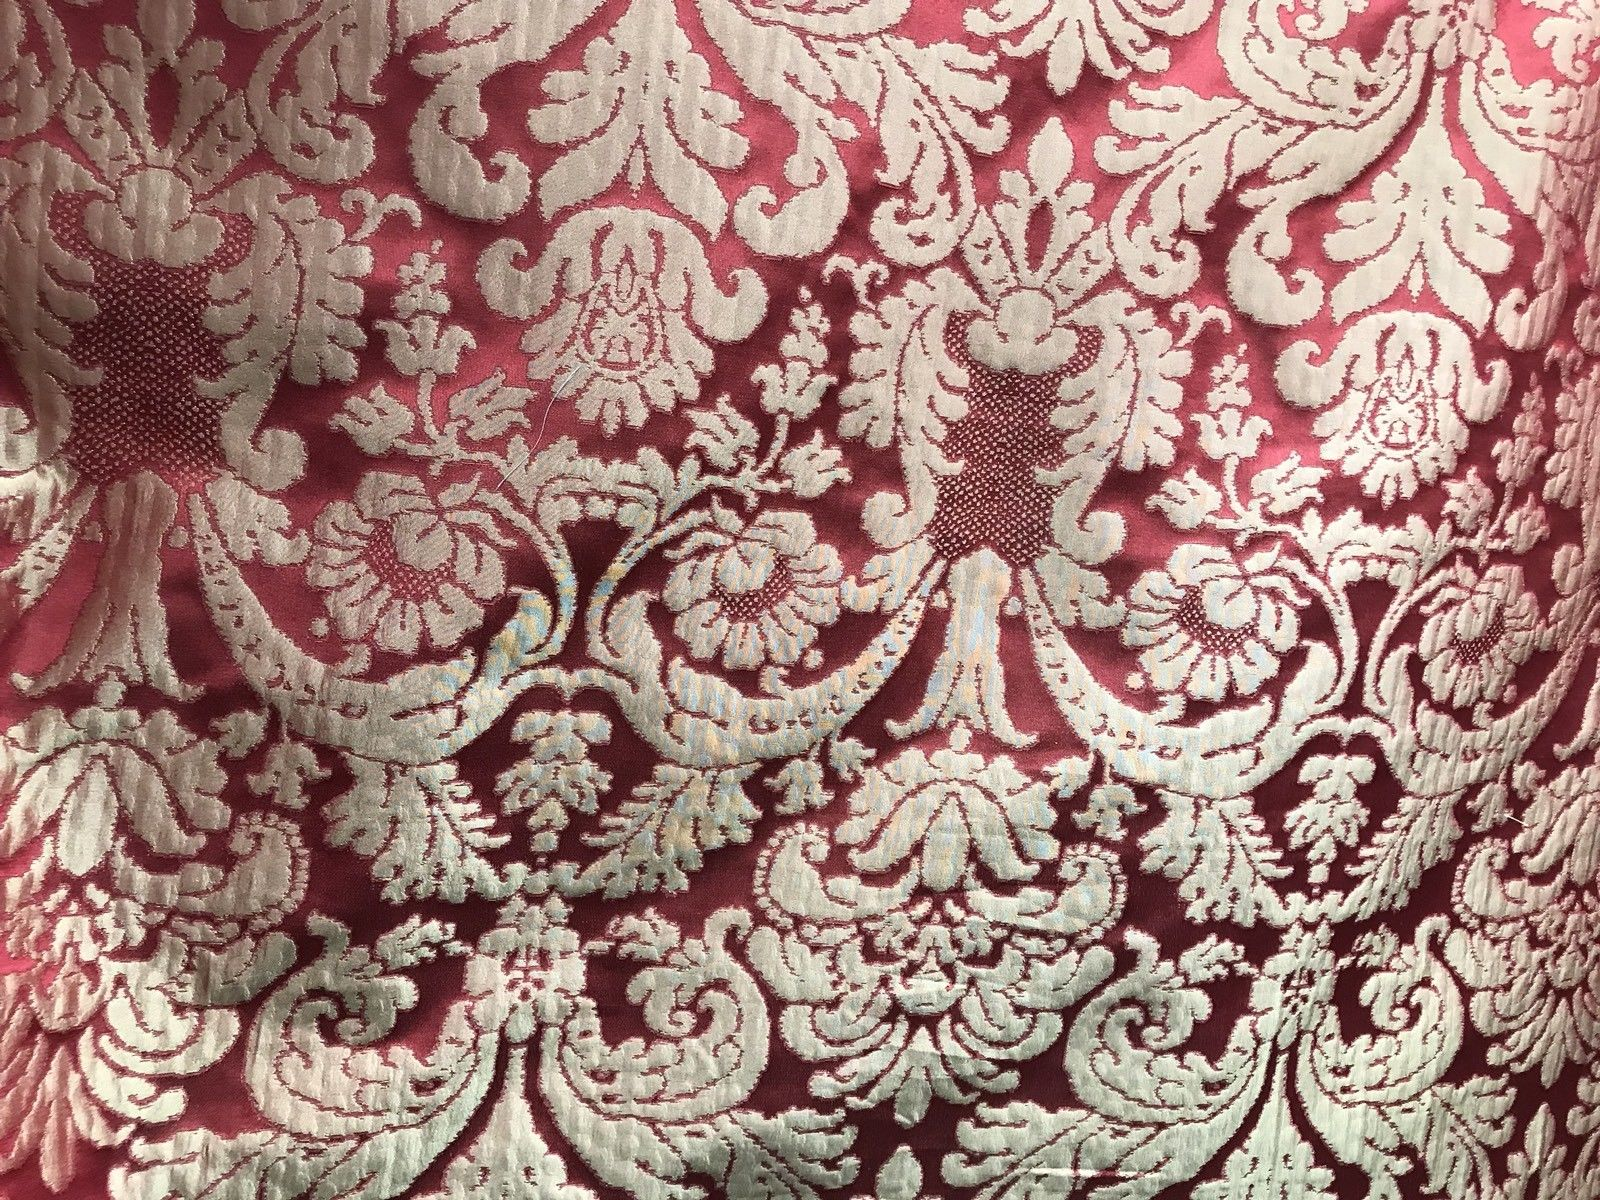 SWATCH- 100% Silk Taffeta Damask Interior Design Fabric - Rouge Red - Fancy Styles Fabric Boutique